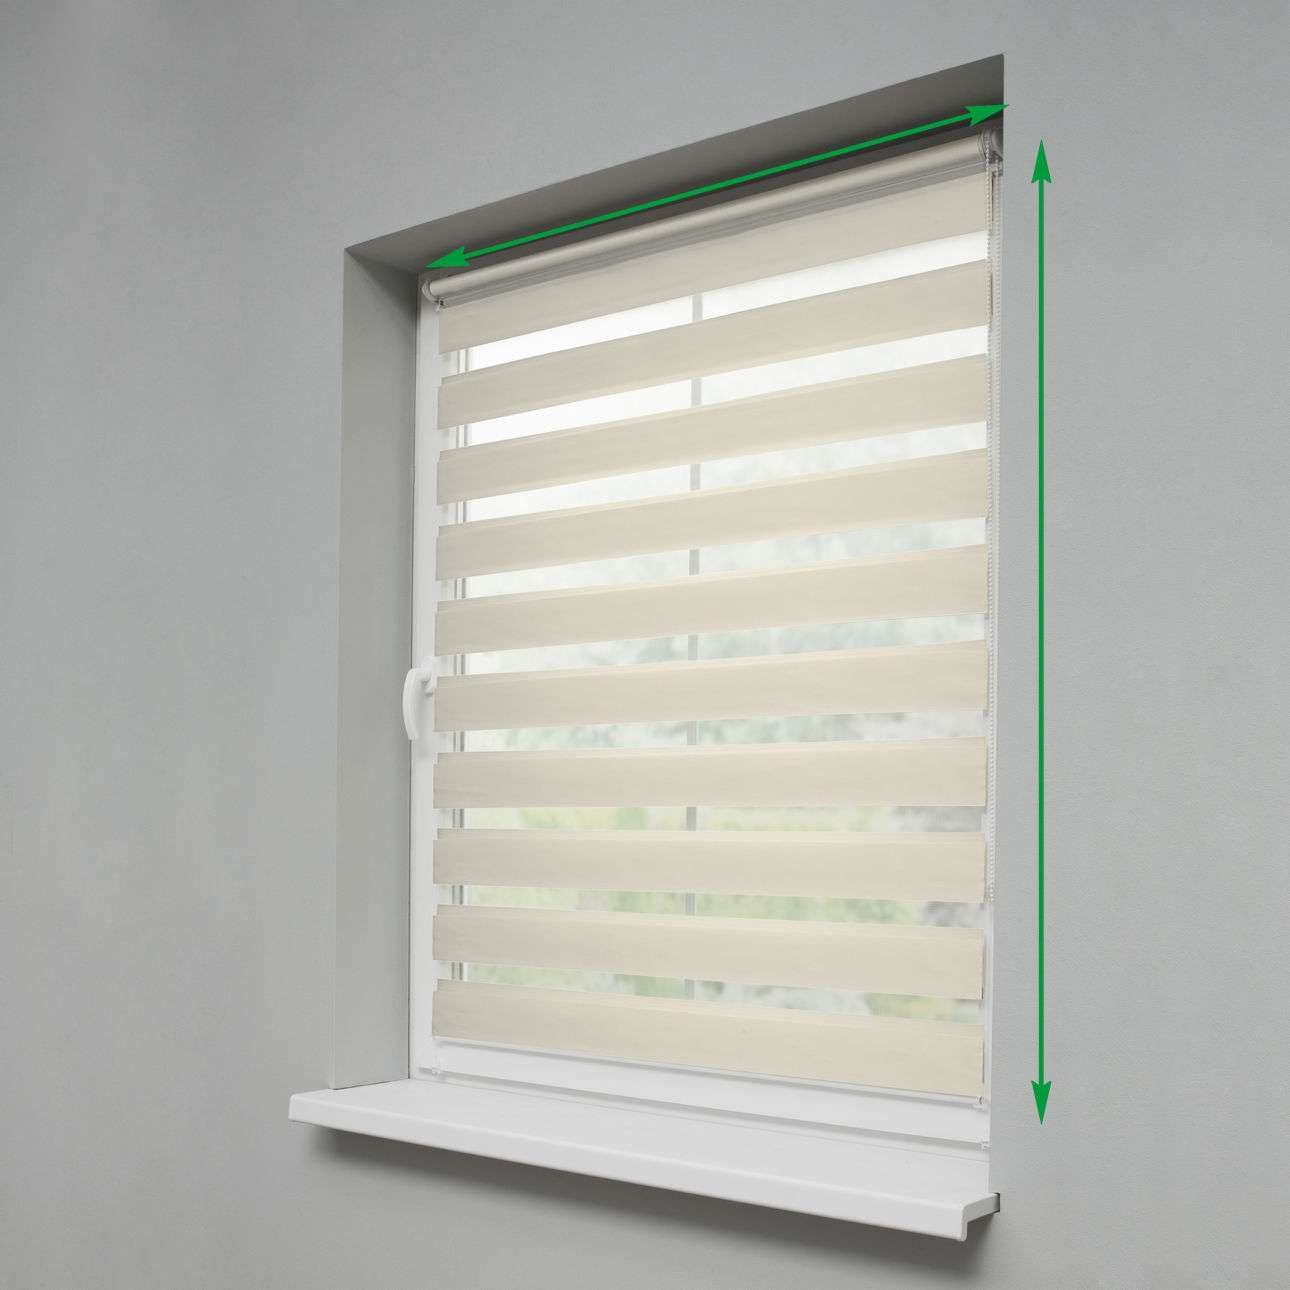 Mini Day & Night Venetian roller blind (compact design for fitting inside window recess) in collection Roller blinds Day & Night (Venetian blind), fabric: 0105